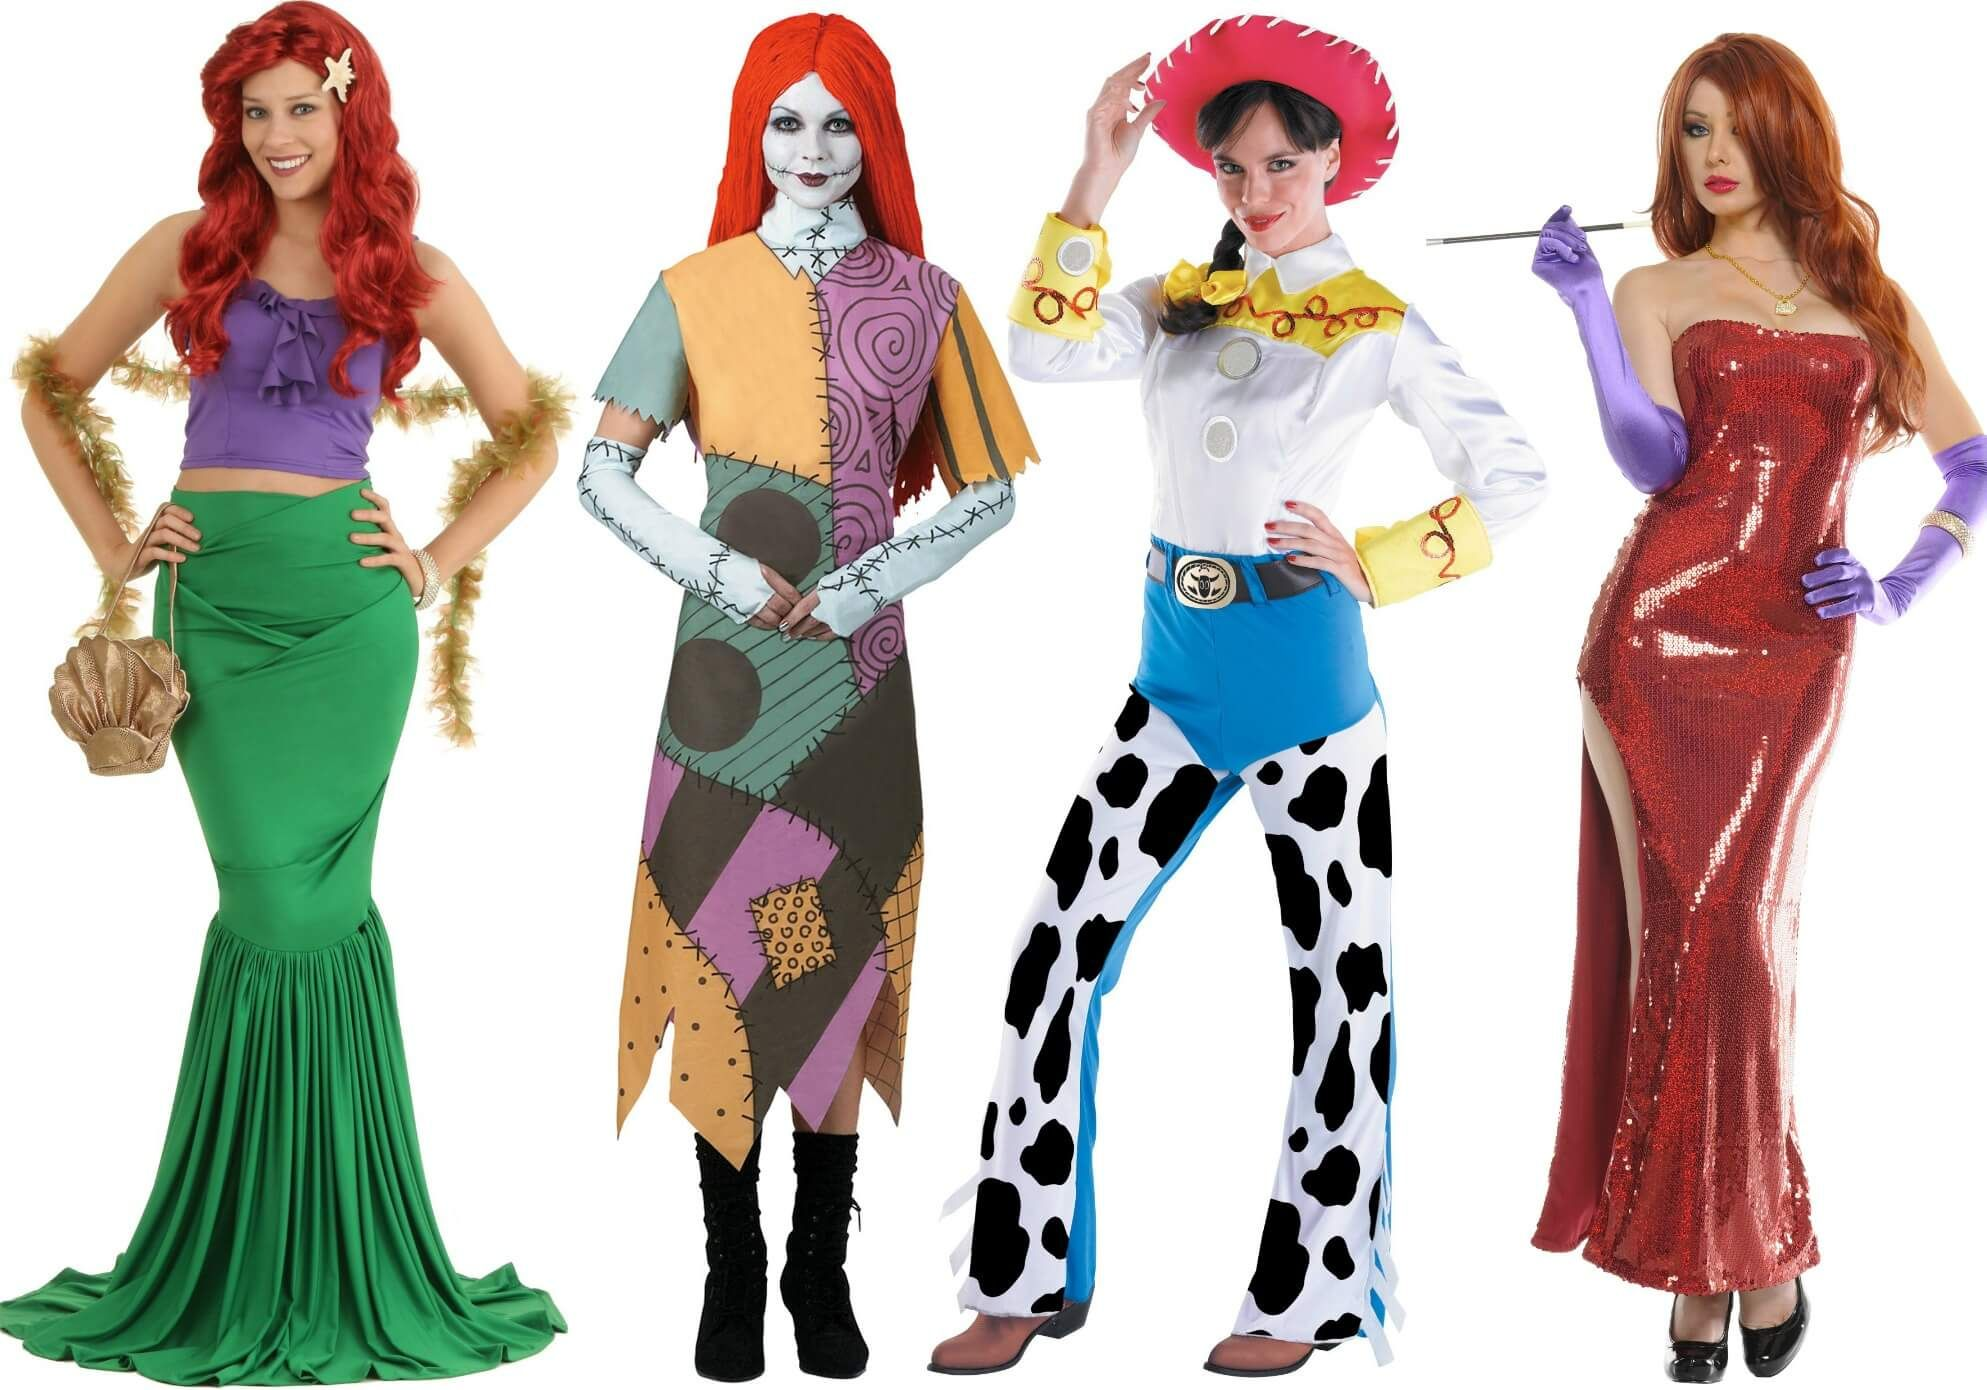 Halloween Costumes For Redheads Halloweencostumes Com Blog Red Head Halloween Costumes Halloween Costume Design Disney Characters Costumes